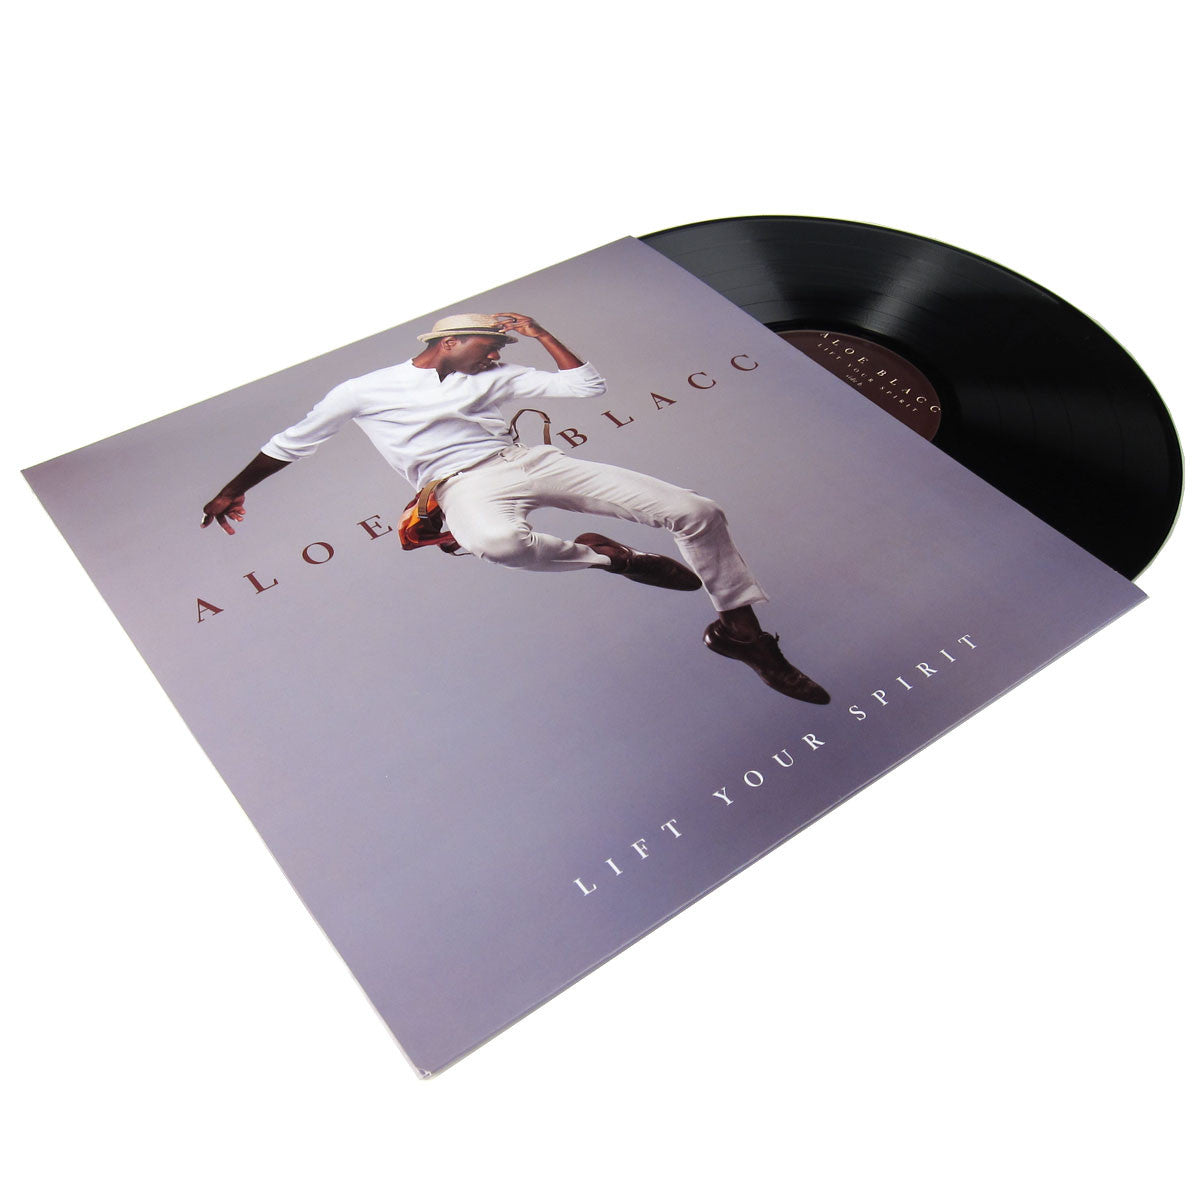 Aloe Blacc: Lift Your Spirit Vinyl LP